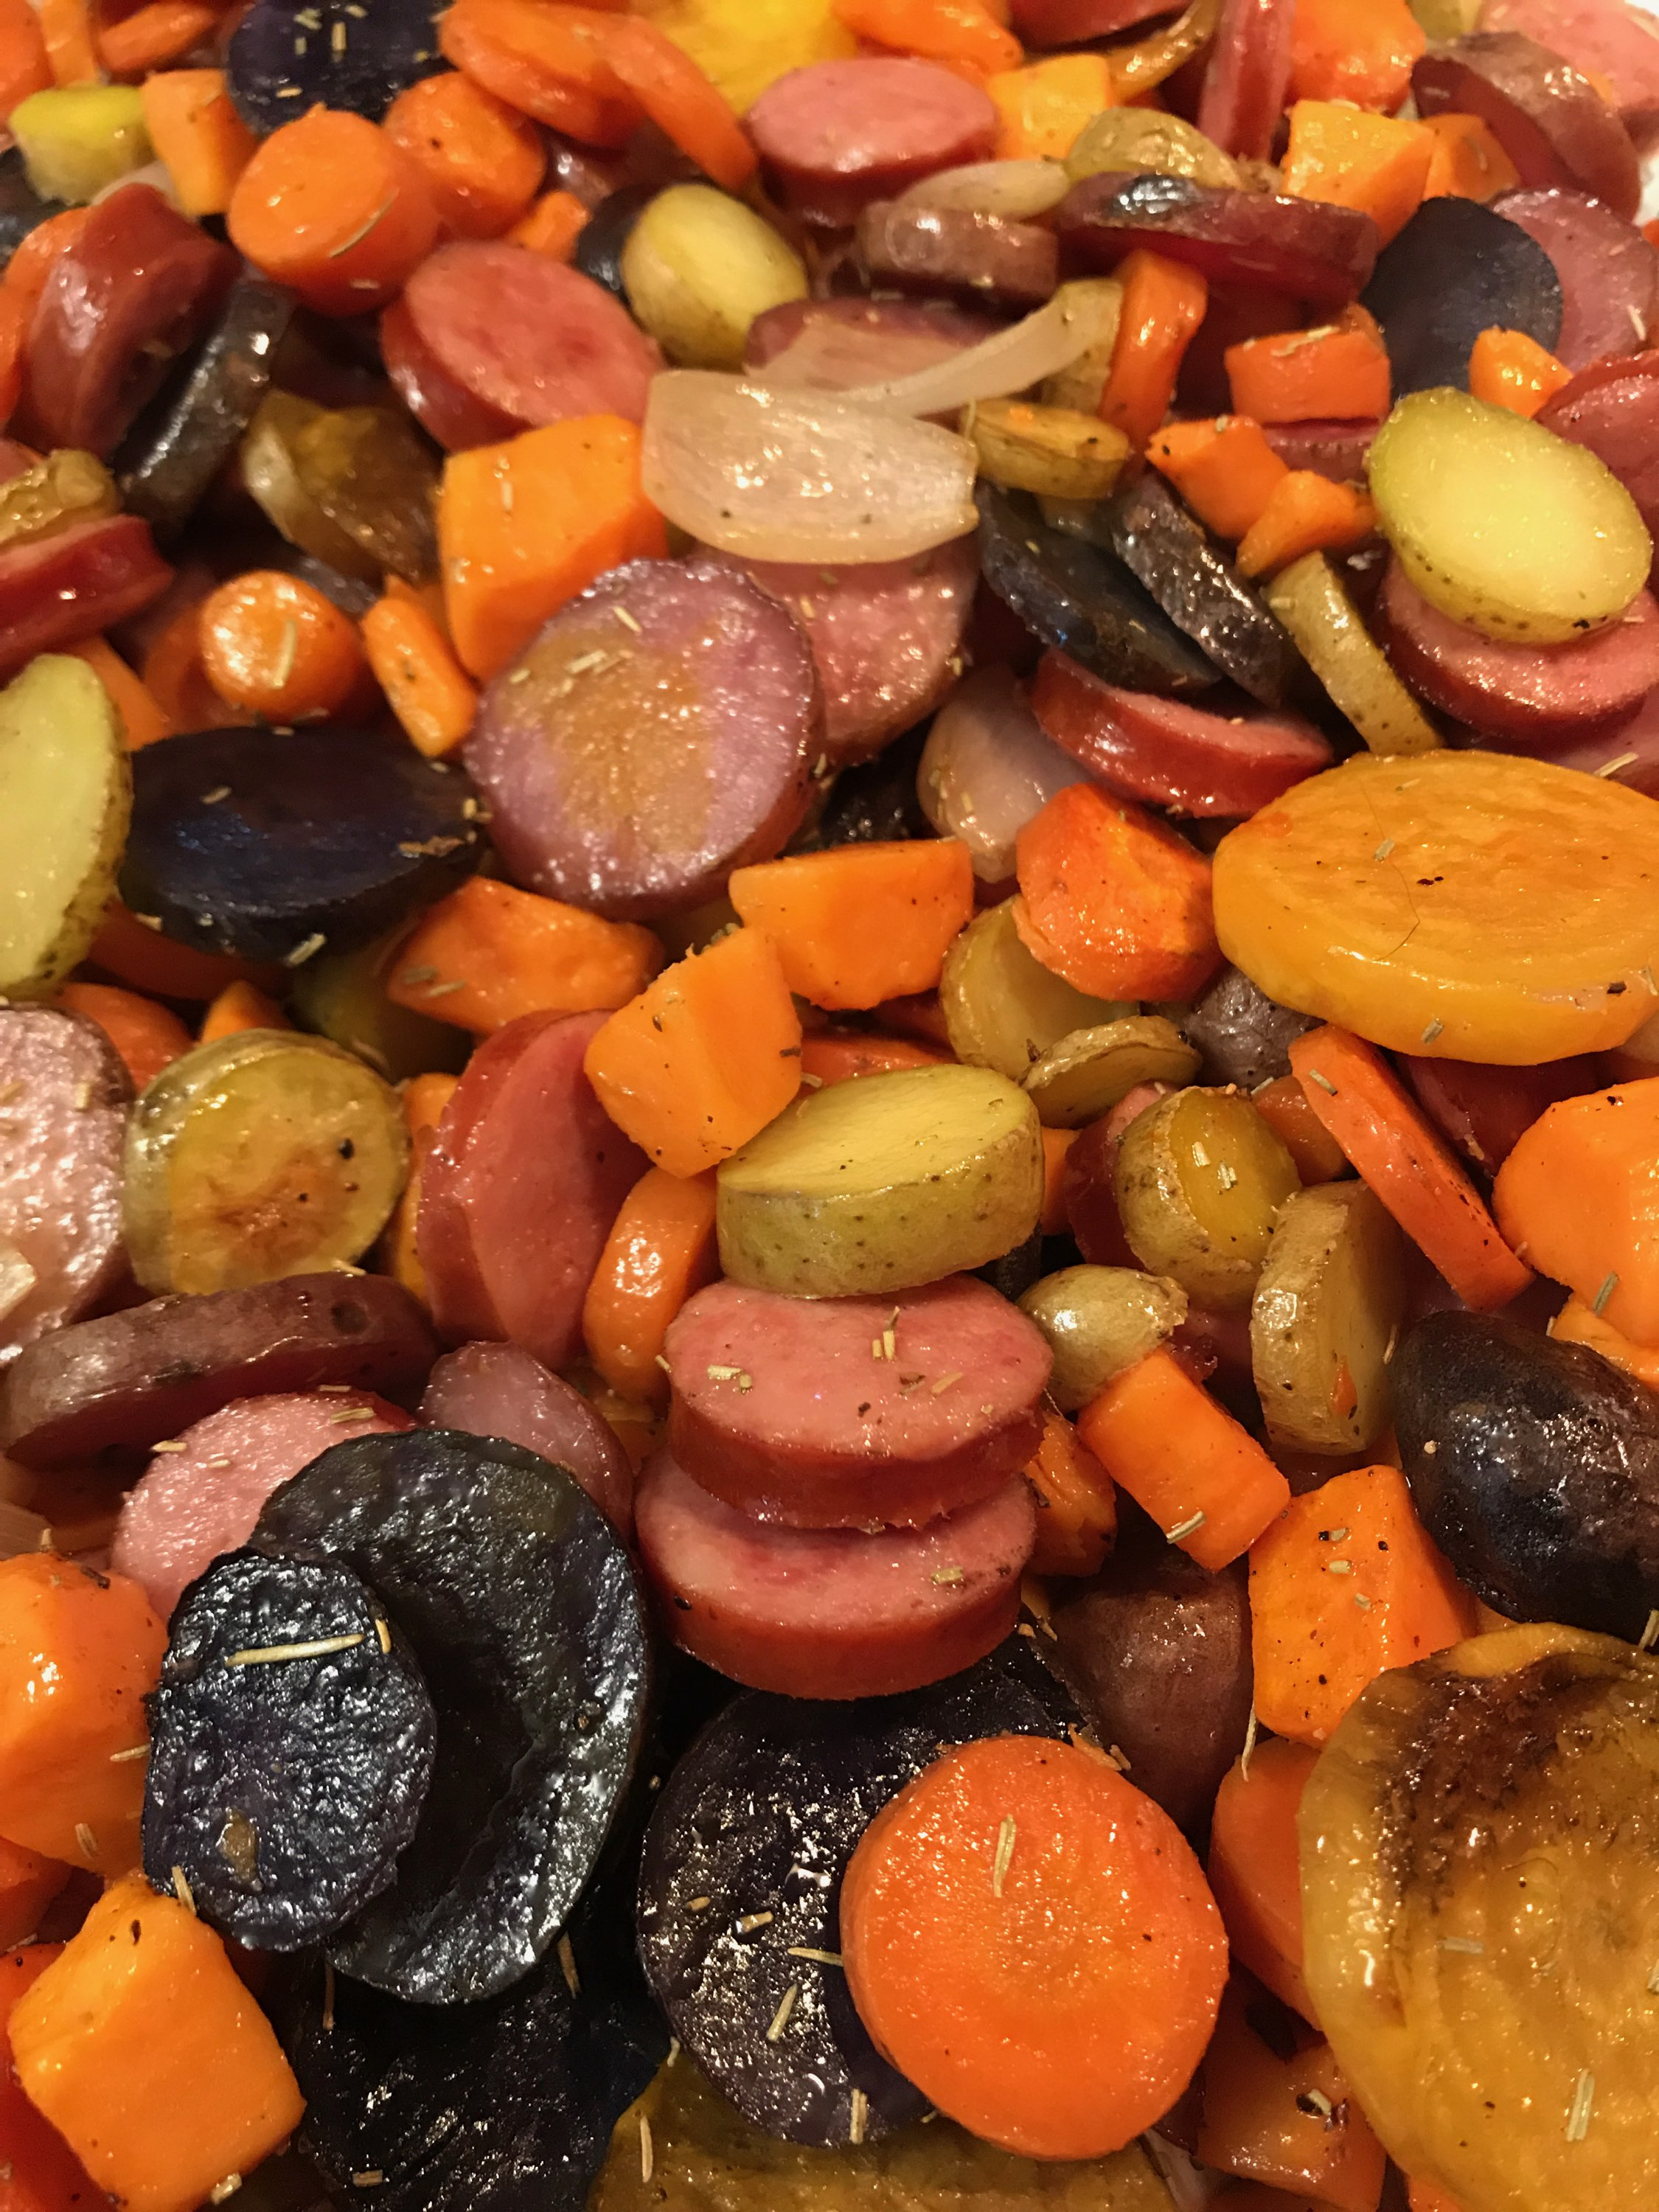 Hillshire Farm® Smoked Sausage and Roasted Root Veggies coops